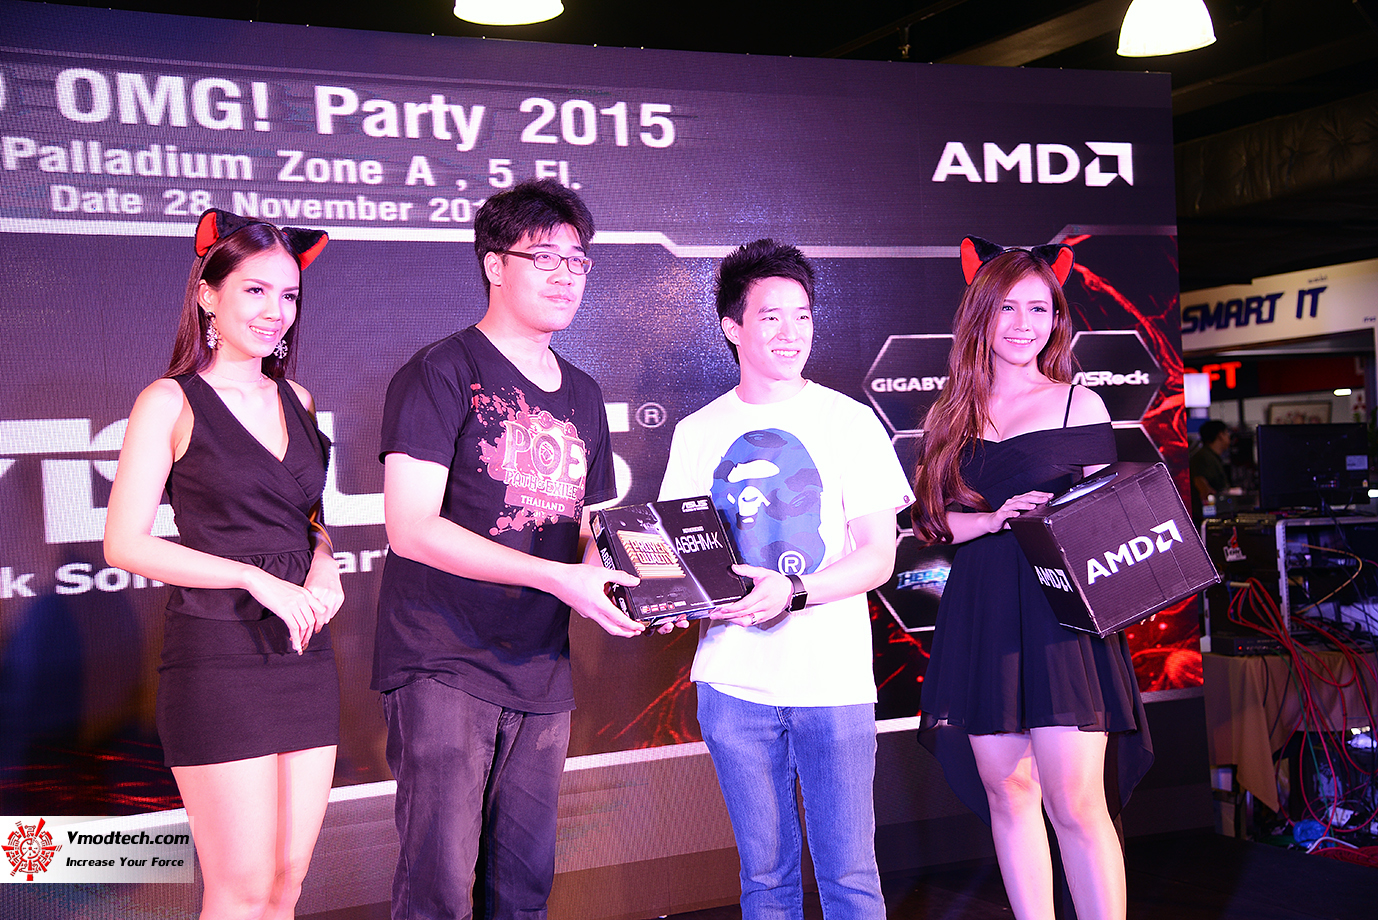 dsc 7156 AMD OMG! Party 2015 (AMD Overclock Modding Gaming Party 2015)